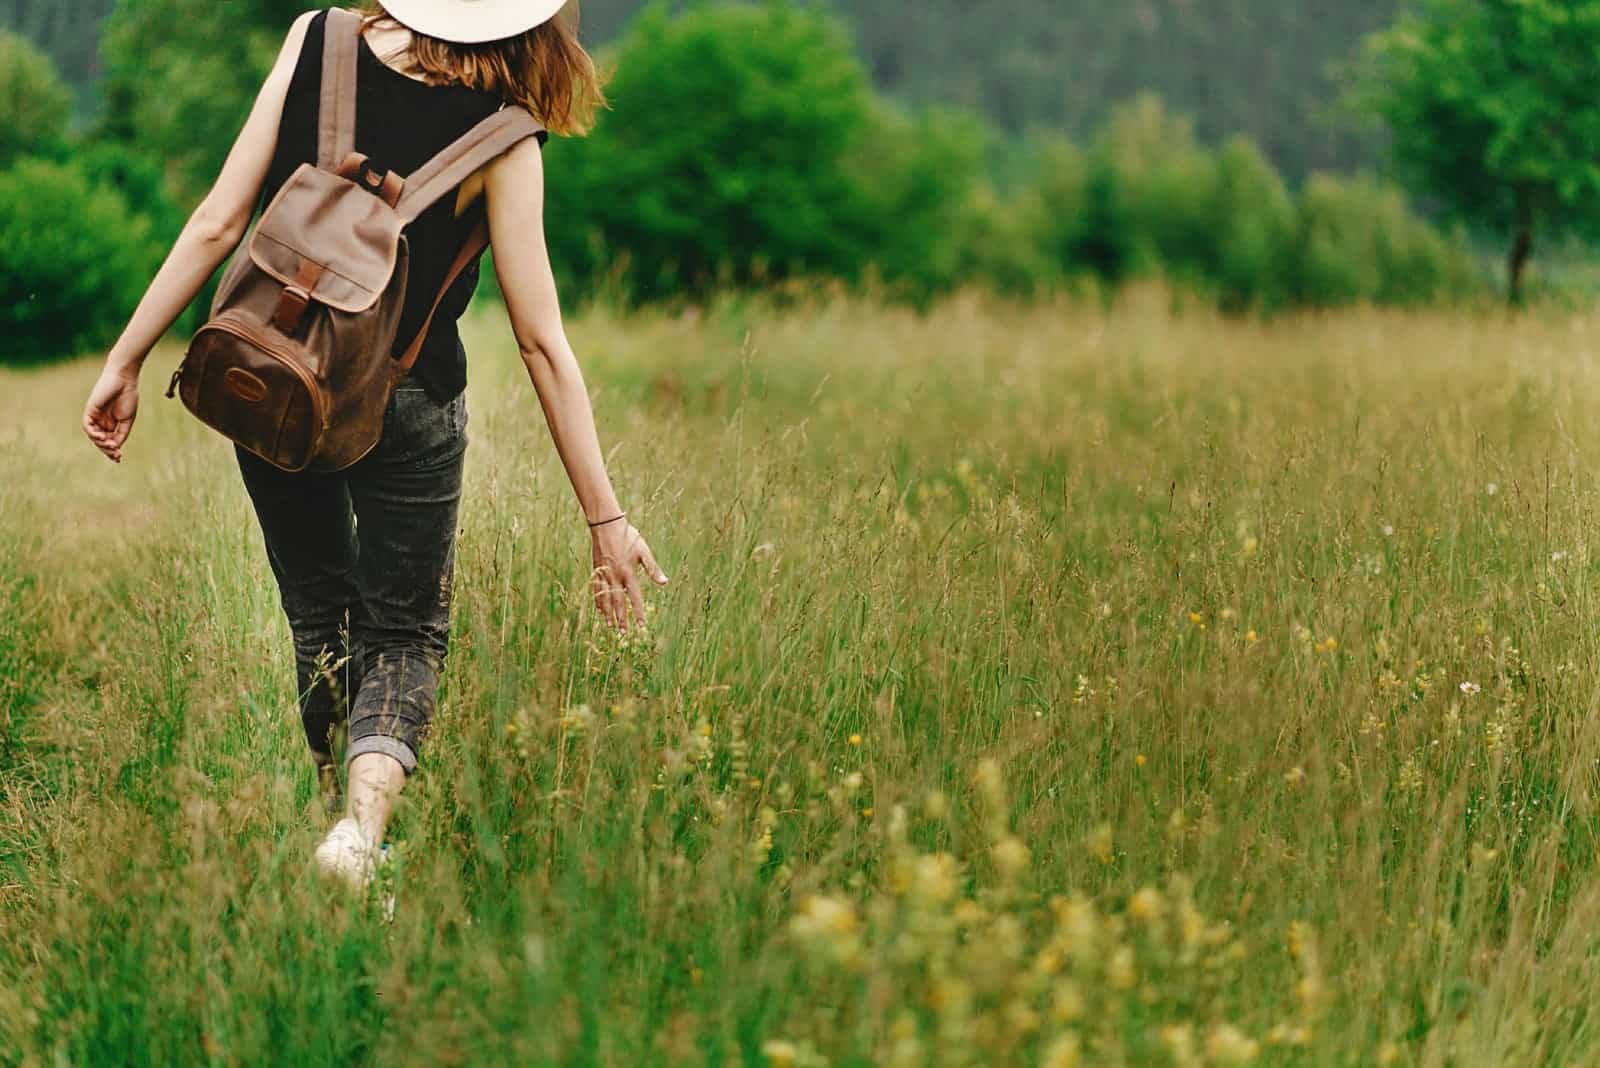 a girl with a backpack on her back walks in nature